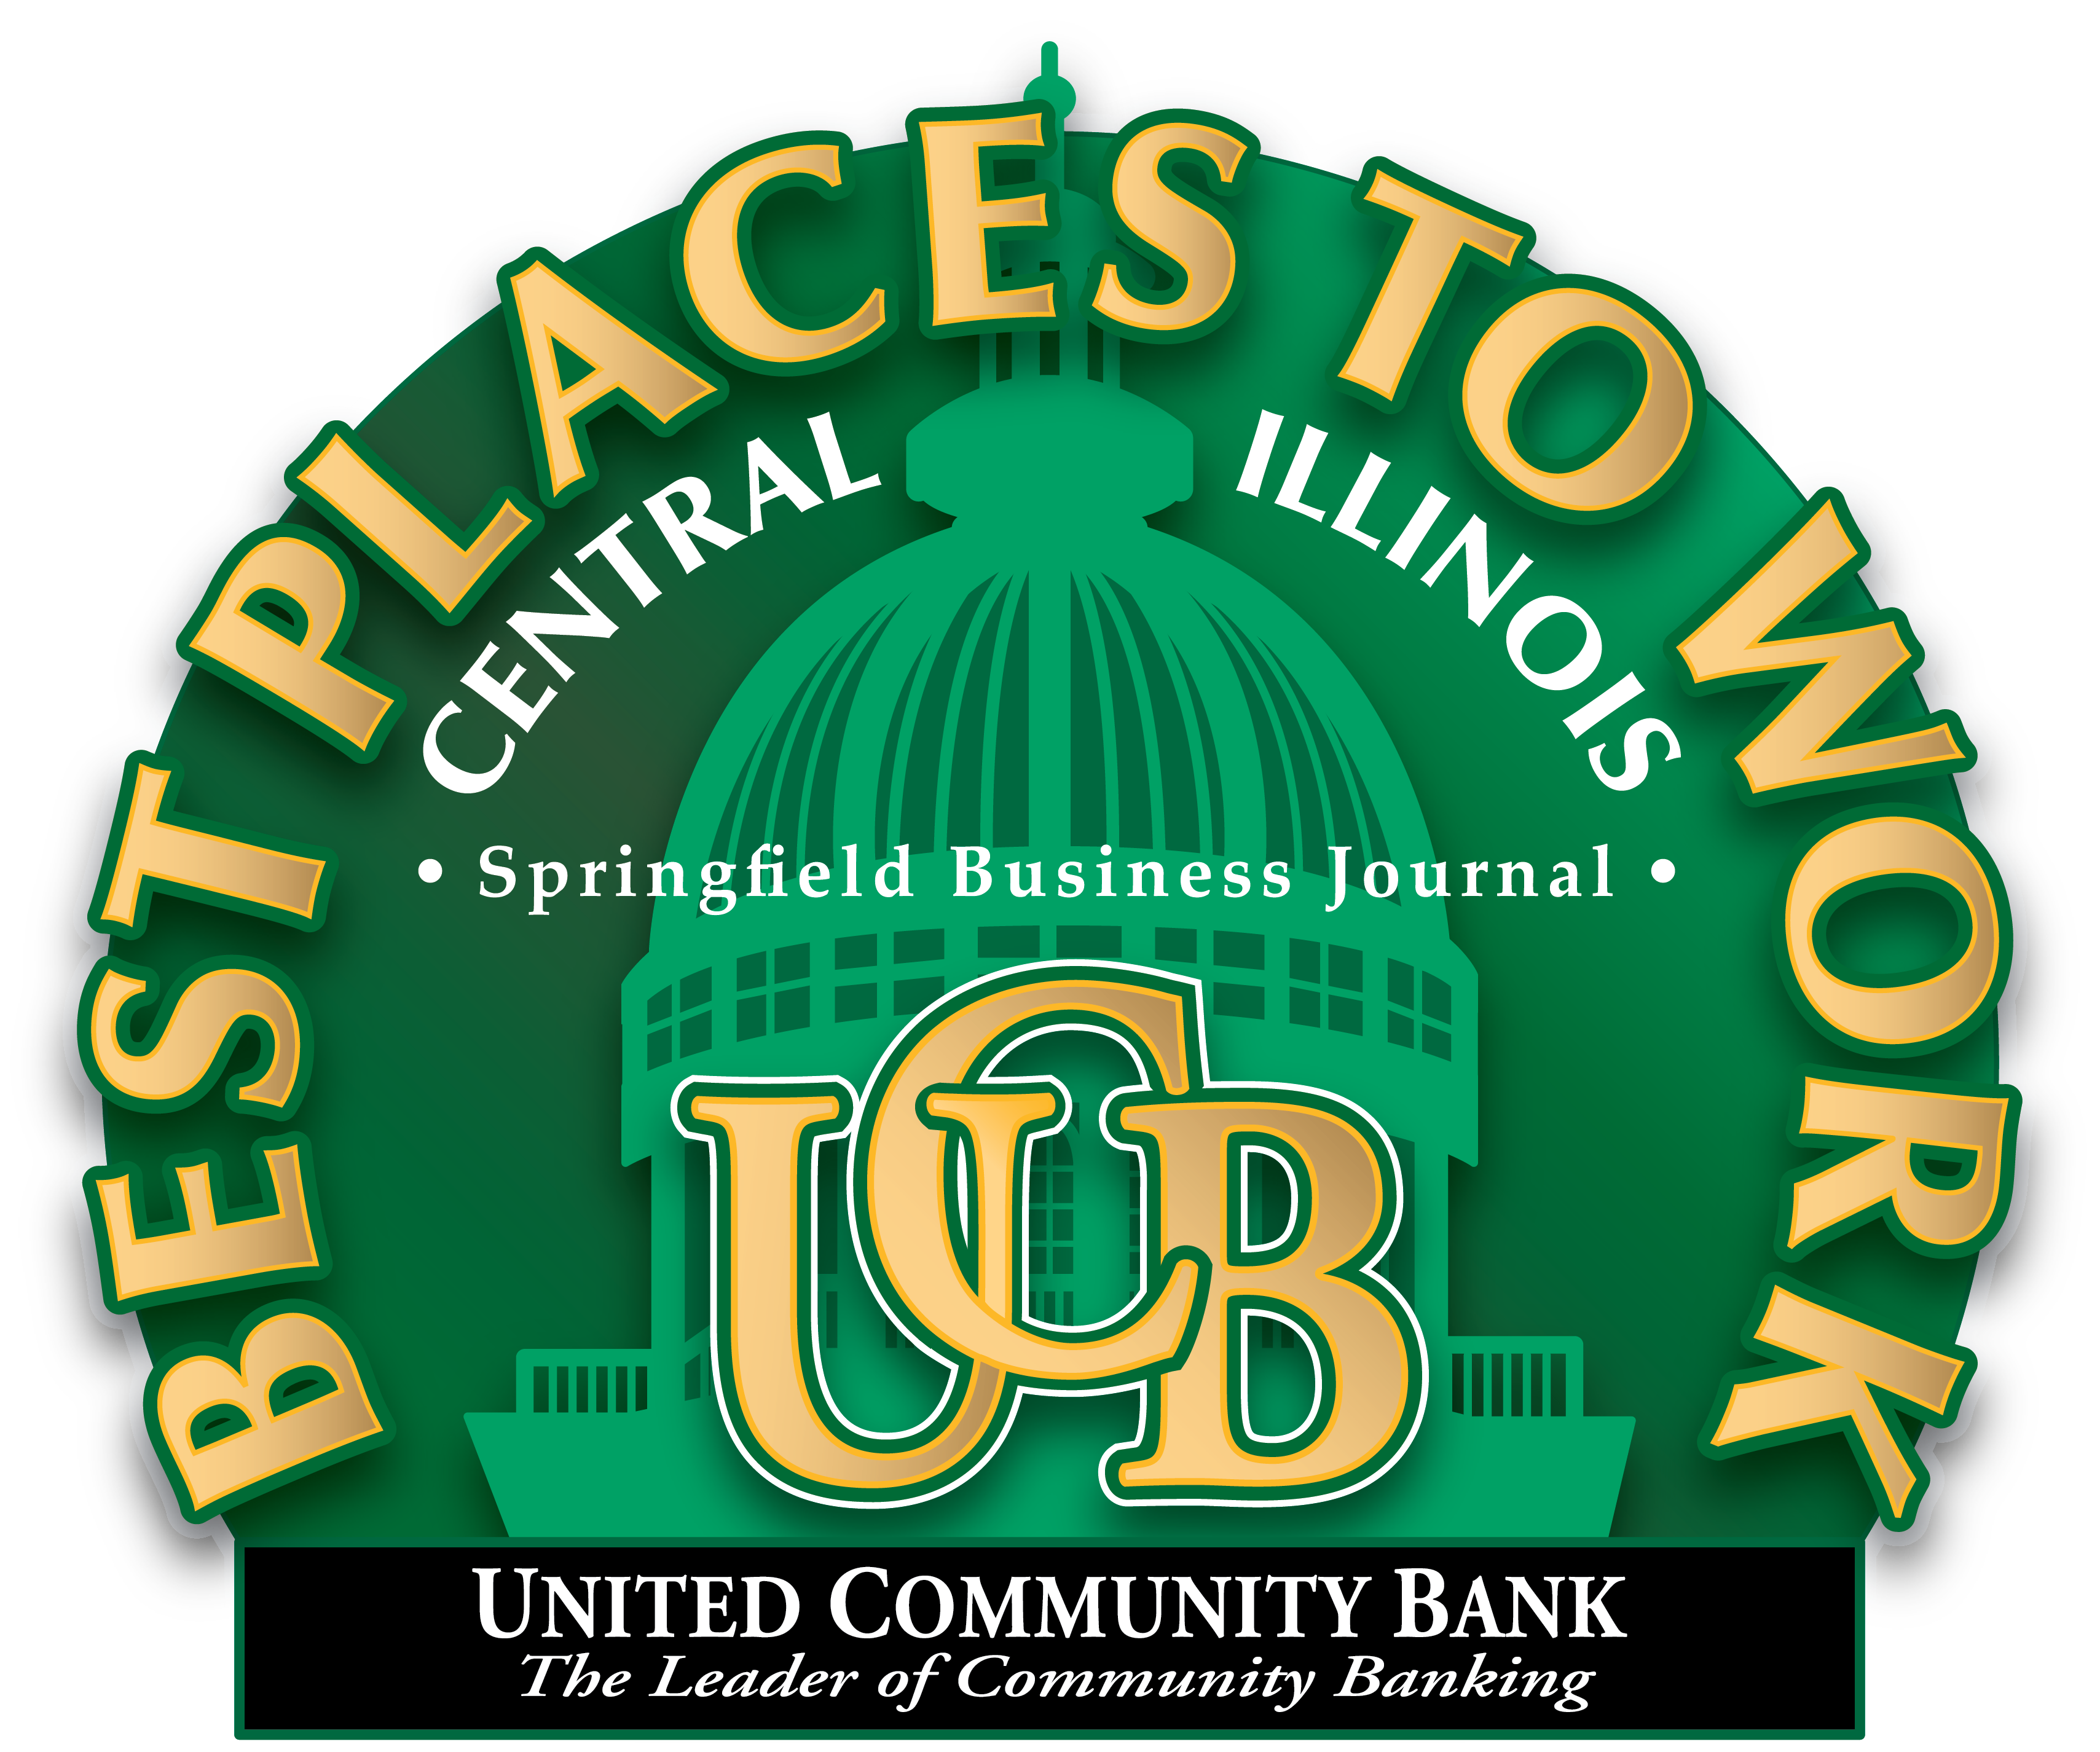 Best Places to Work - United Community Bank